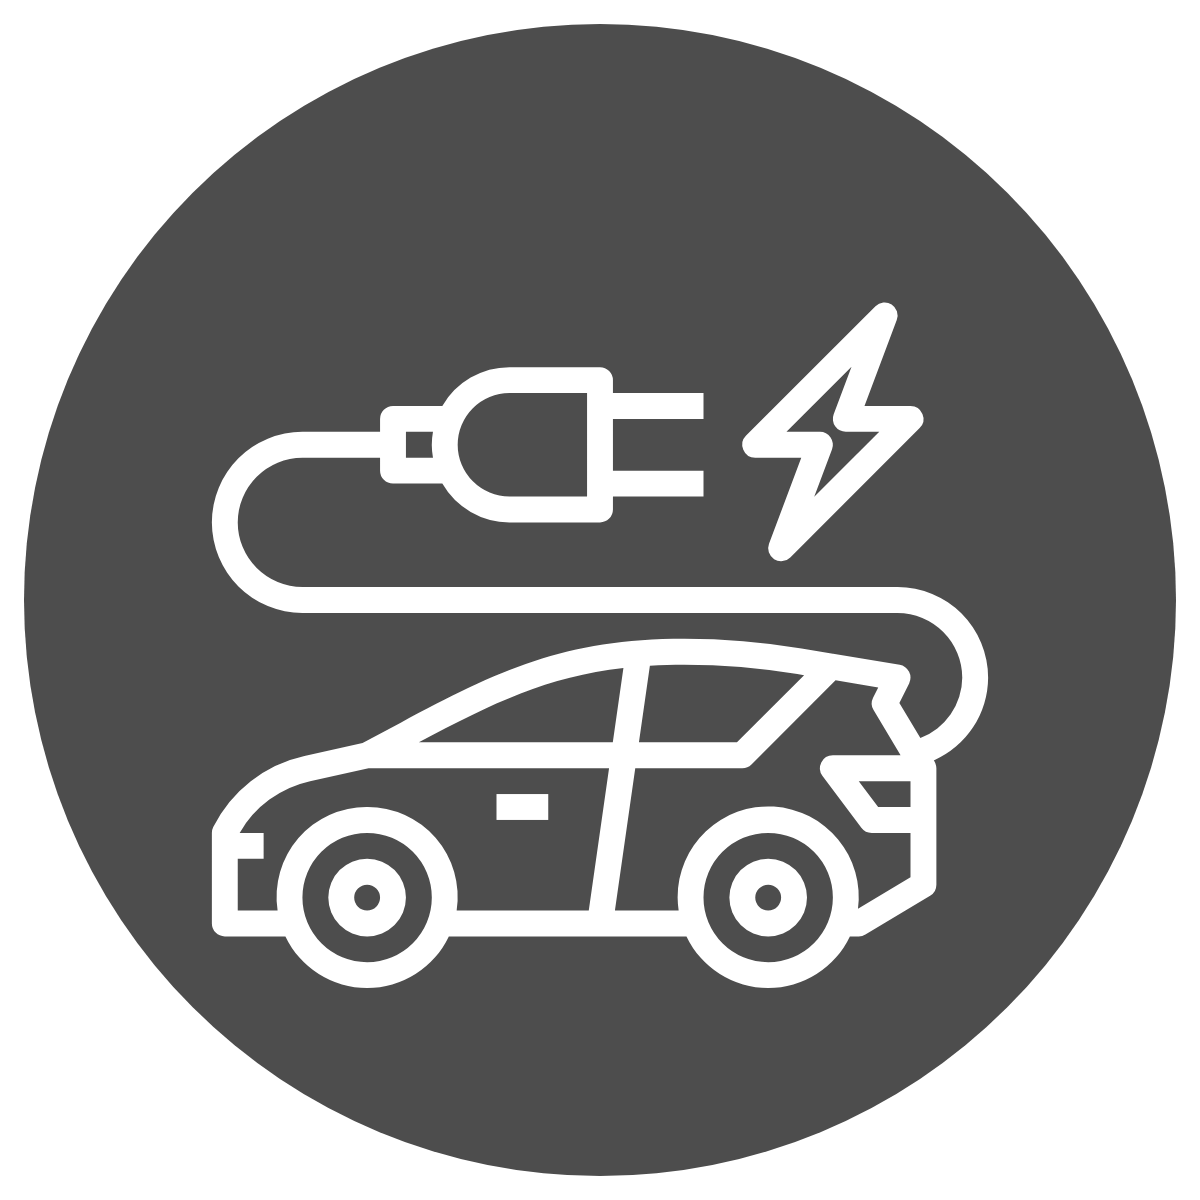 simple line drawing of a car with an electrical cord attached to its back